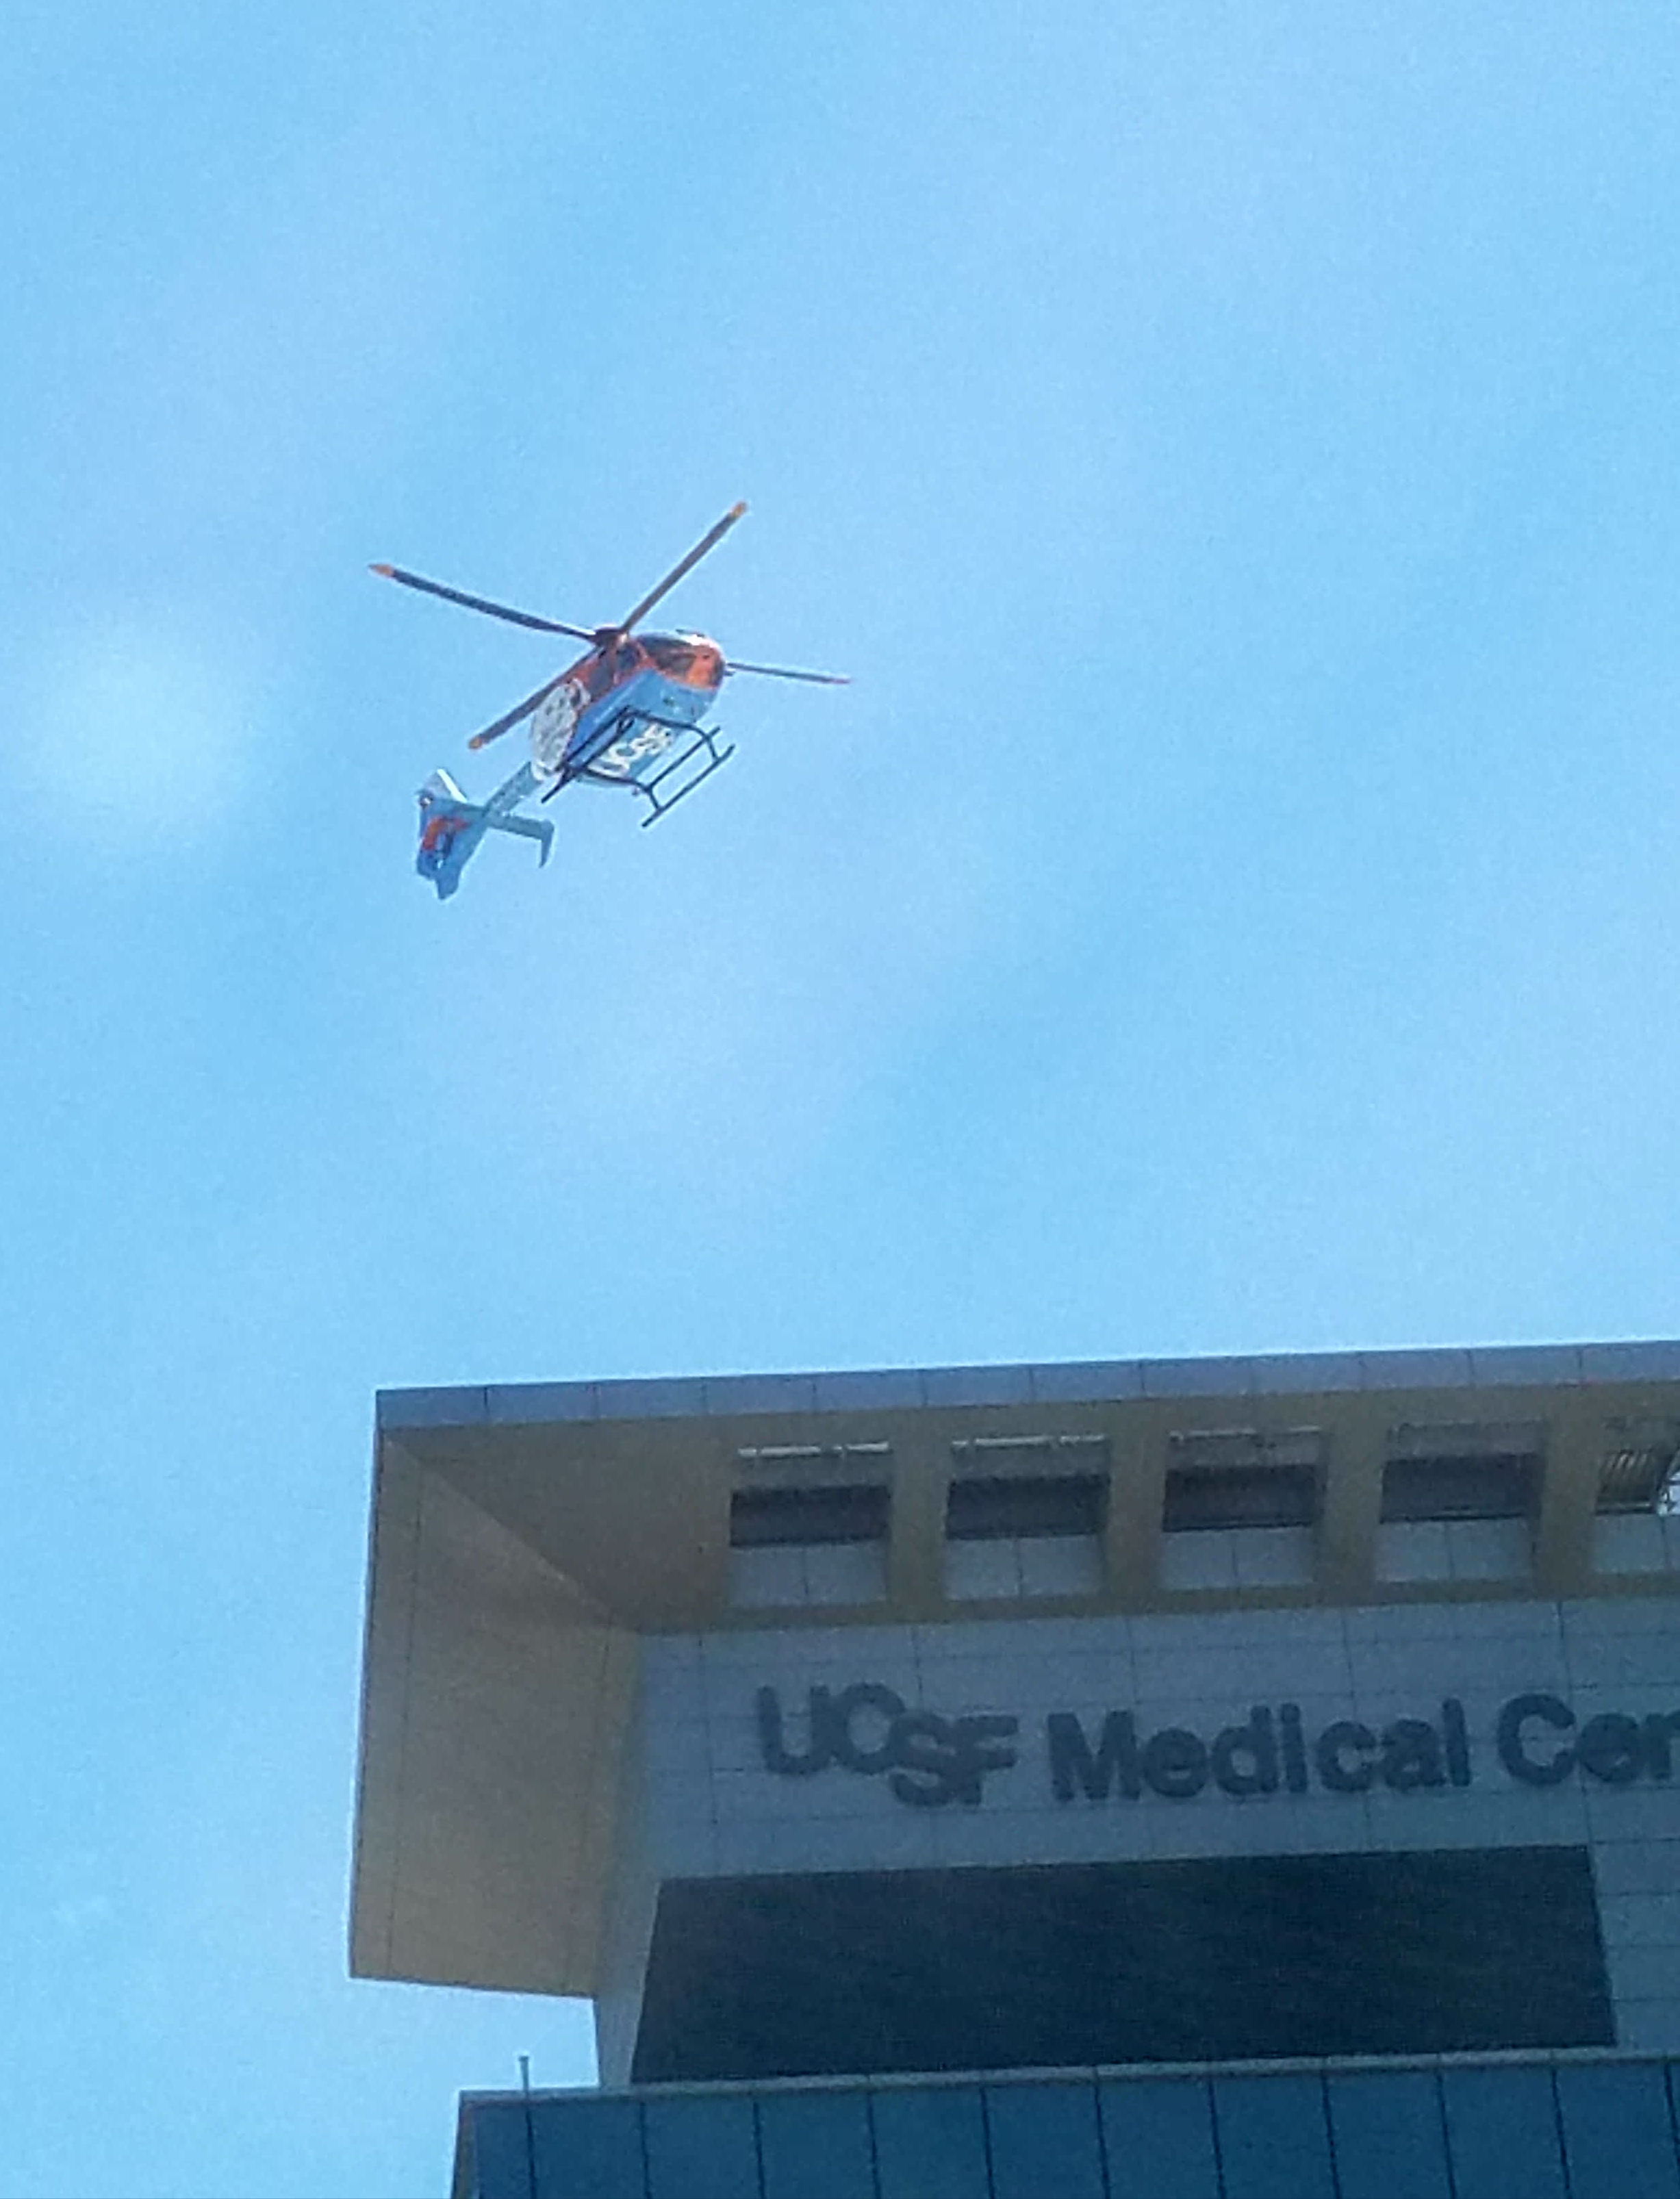 UCSF Medical Center and Children's Hospital across street from Chase Center arena.